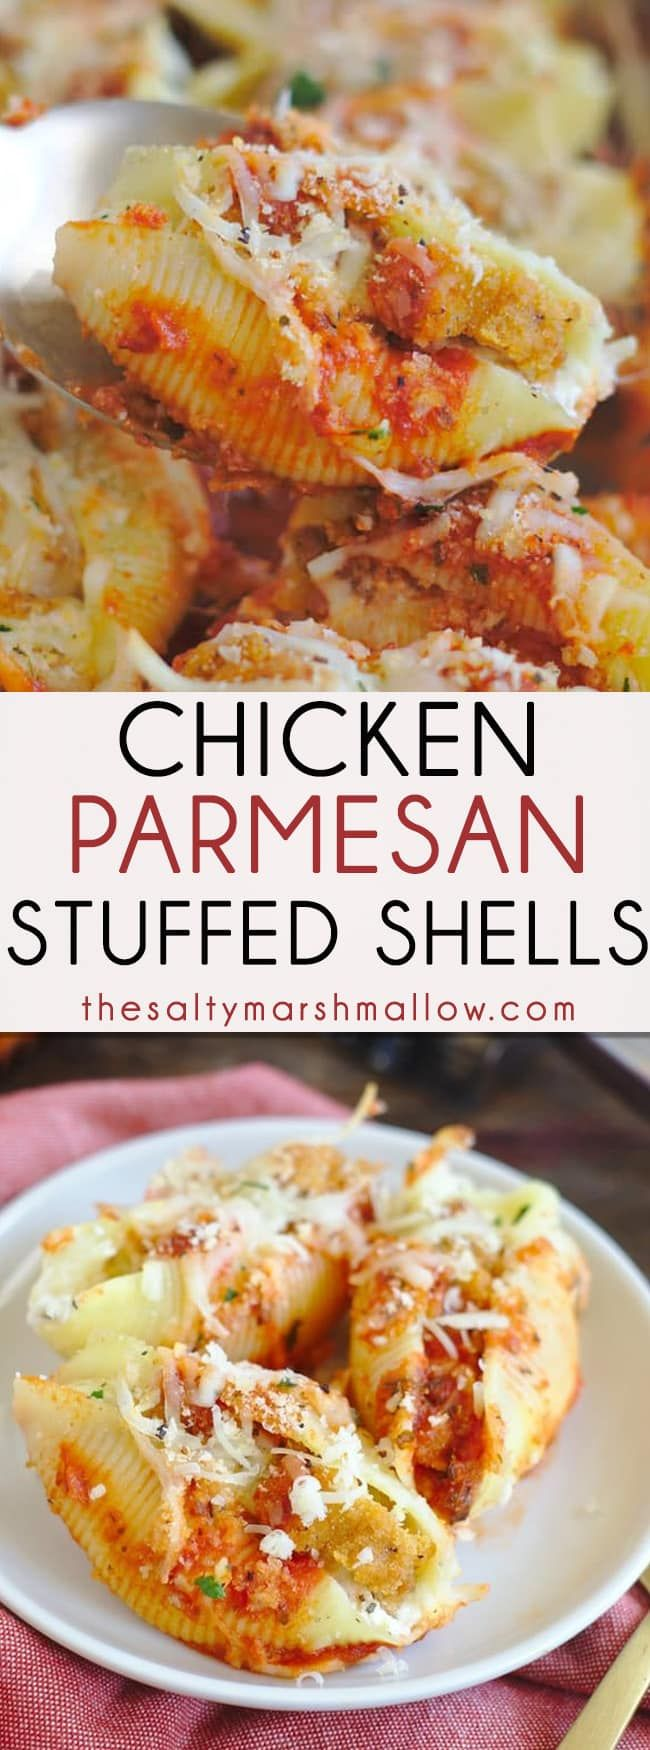 Chicken Parmesan Stuffed Shells - Delicious stuffed shell pasta filled with cheese and crispy chicken, topped with marinara sauce and more cheese! Chicken parmesan stuffed shells are an easy and delicious weeknight meal that is sure to be a new family favorite!